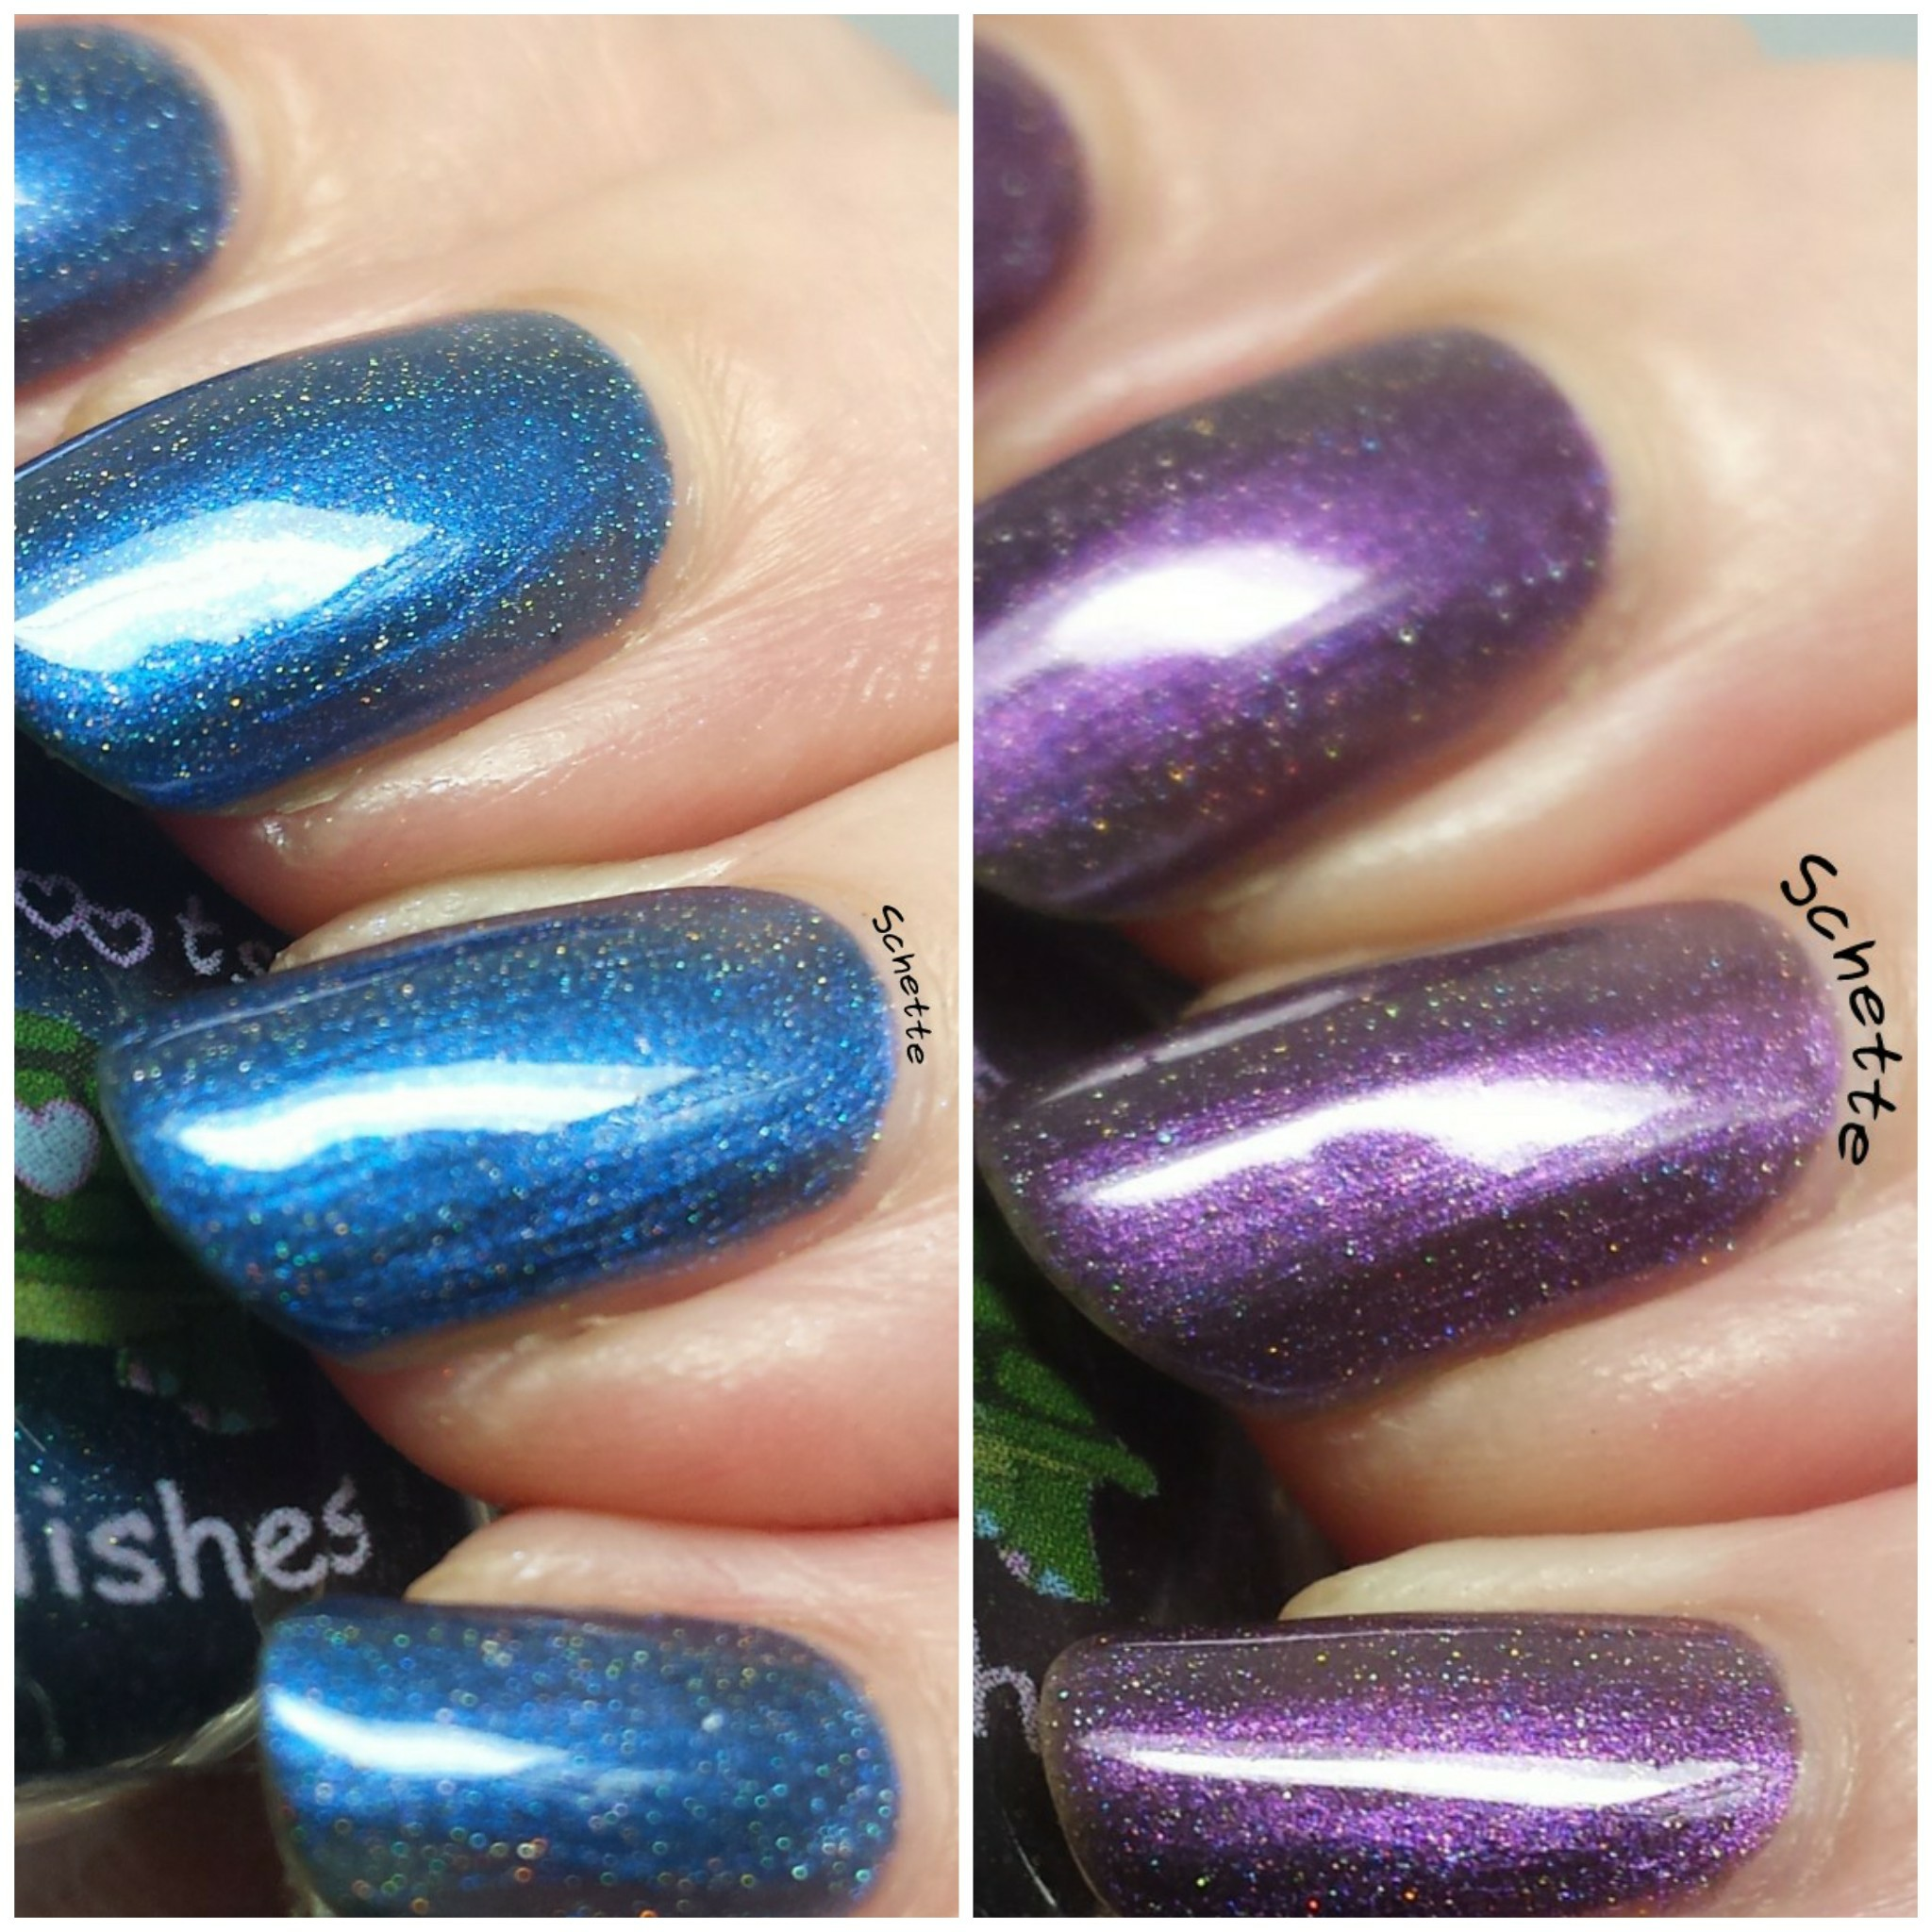 Turtle Tootsie Polish : Full Moon, Holster Sniffer